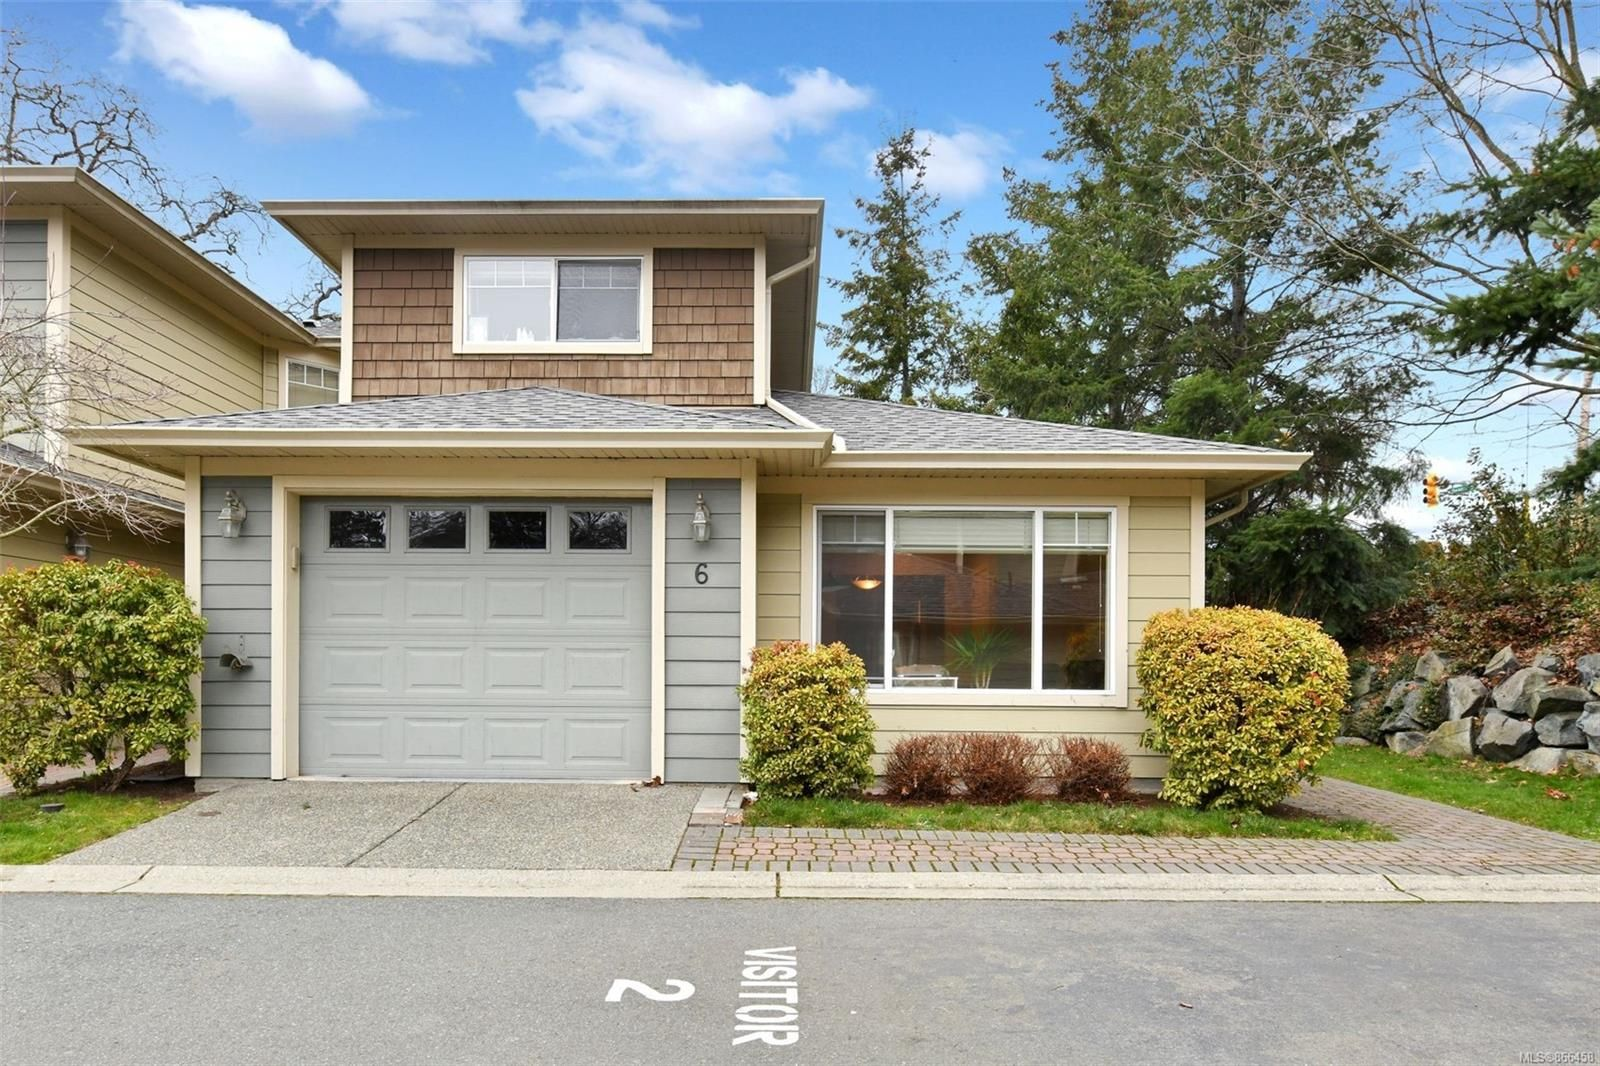 Main Photo: 6 4165 Rockhome Gdns in : SE High Quadra Row/Townhouse for sale (Saanich East)  : MLS®# 866458